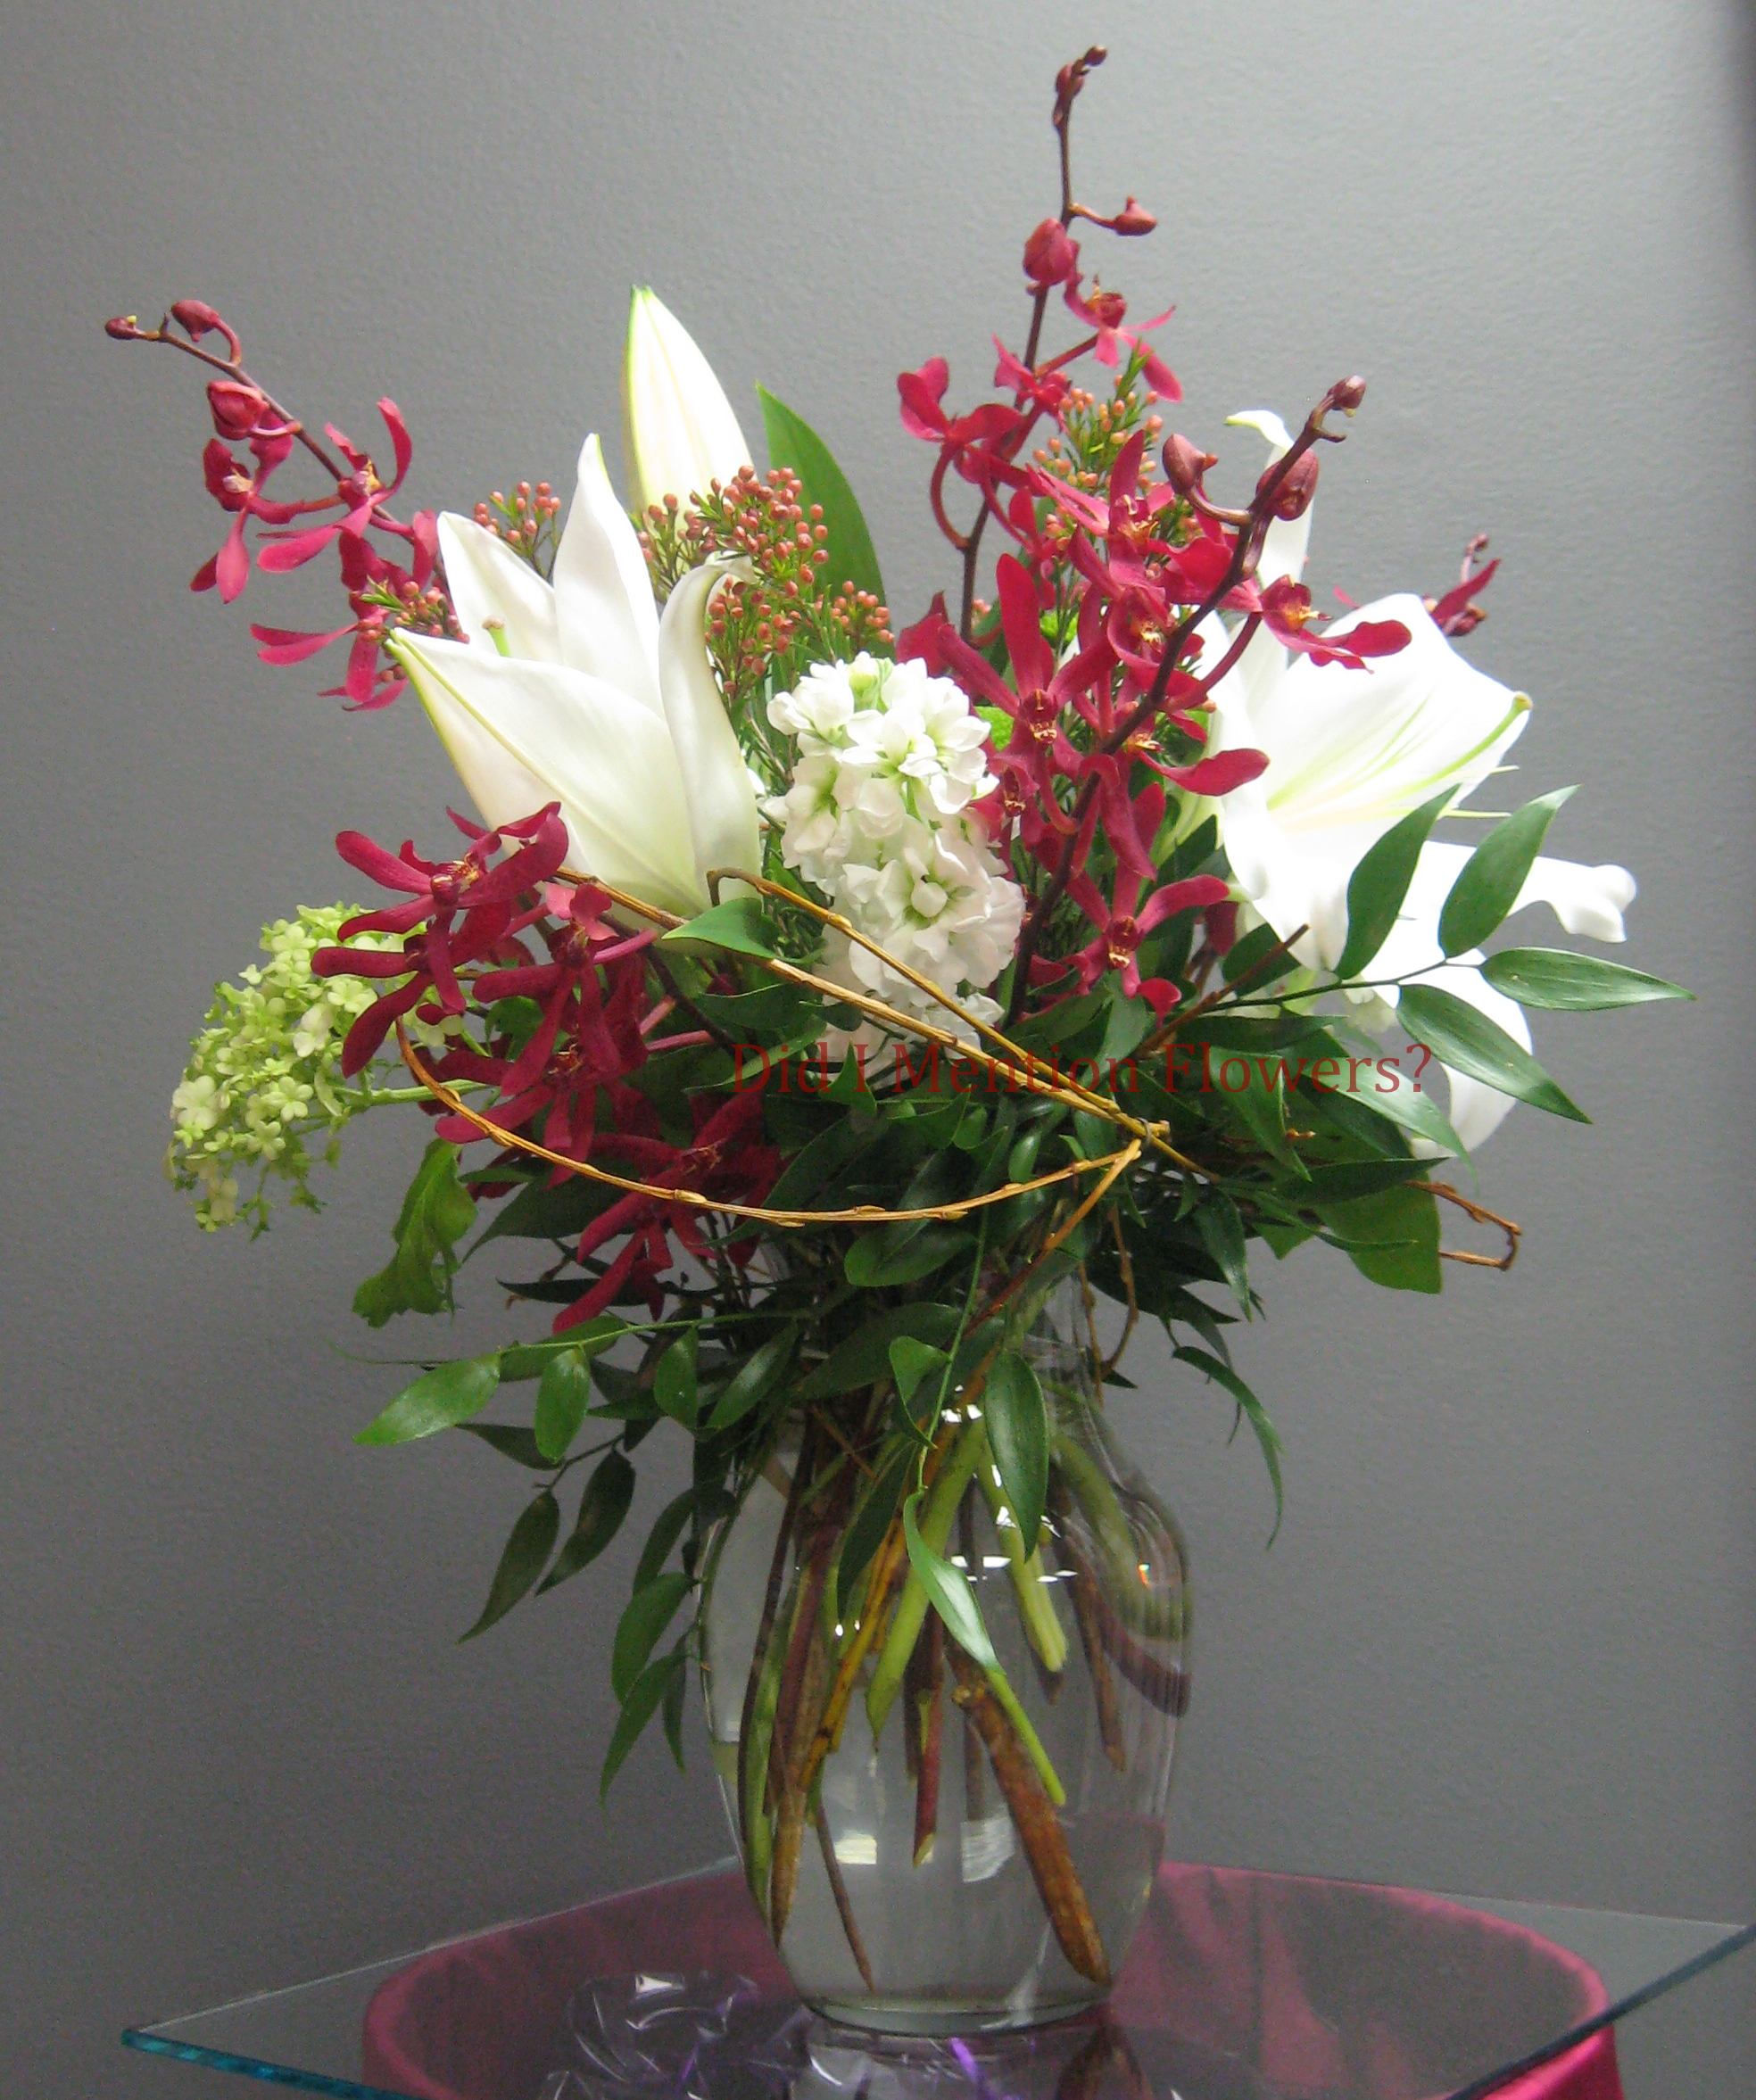 12 - Glass Vase Arrangement